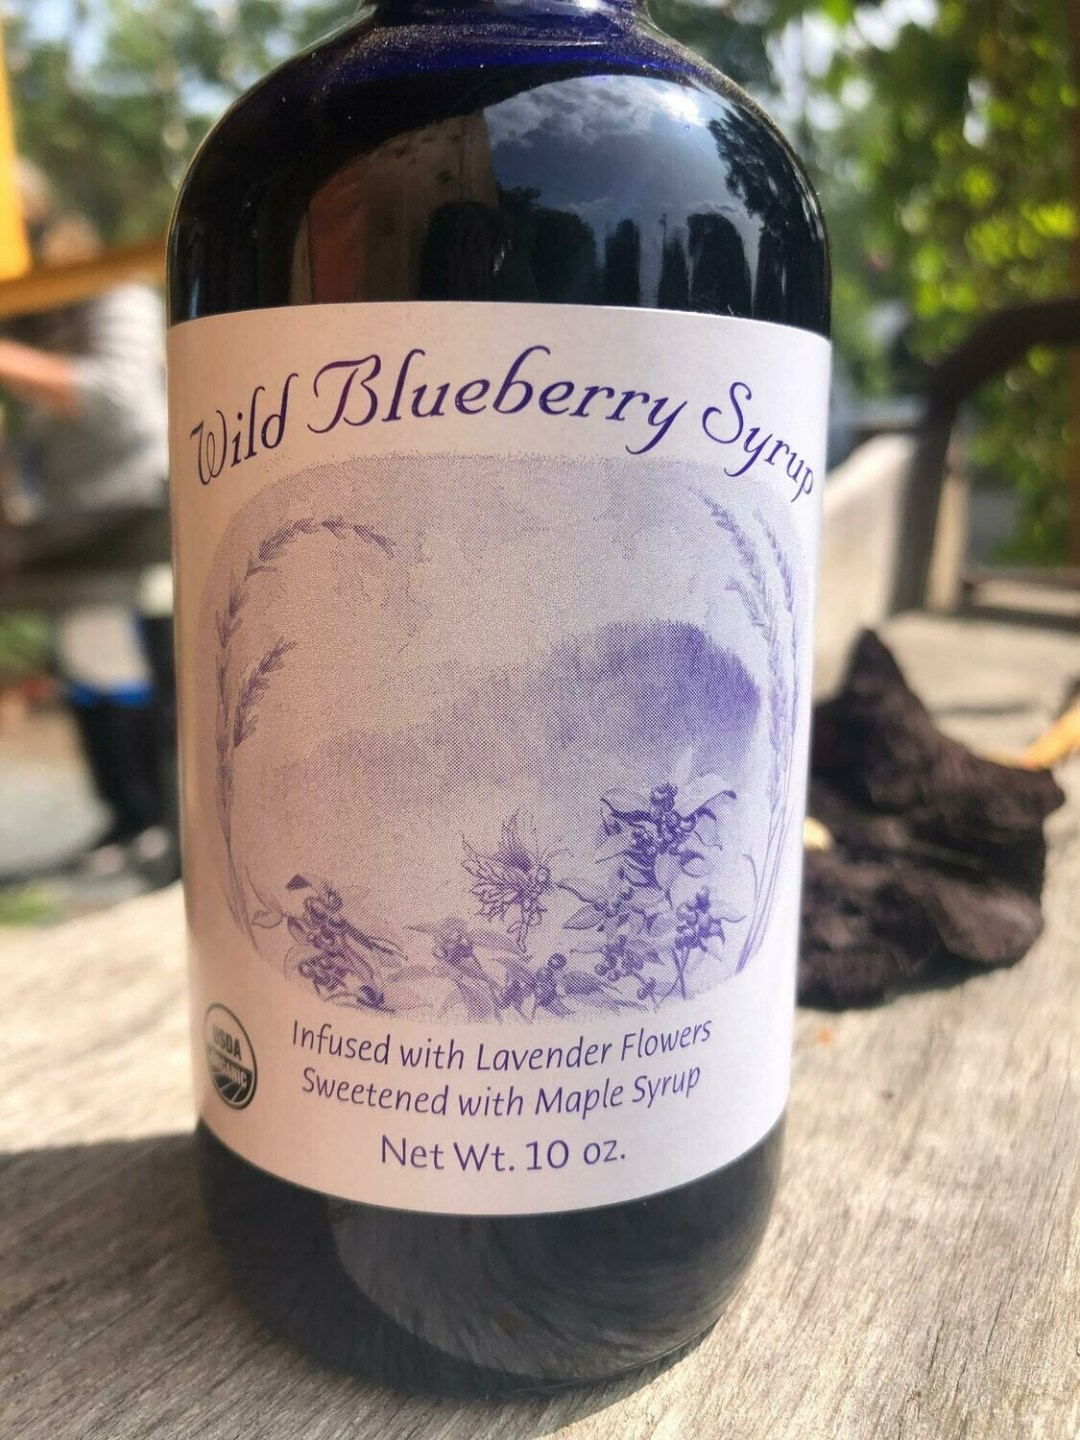 Benson Place Wild Blueberry Syrup (with lavender and maple syrup) 10 oz.